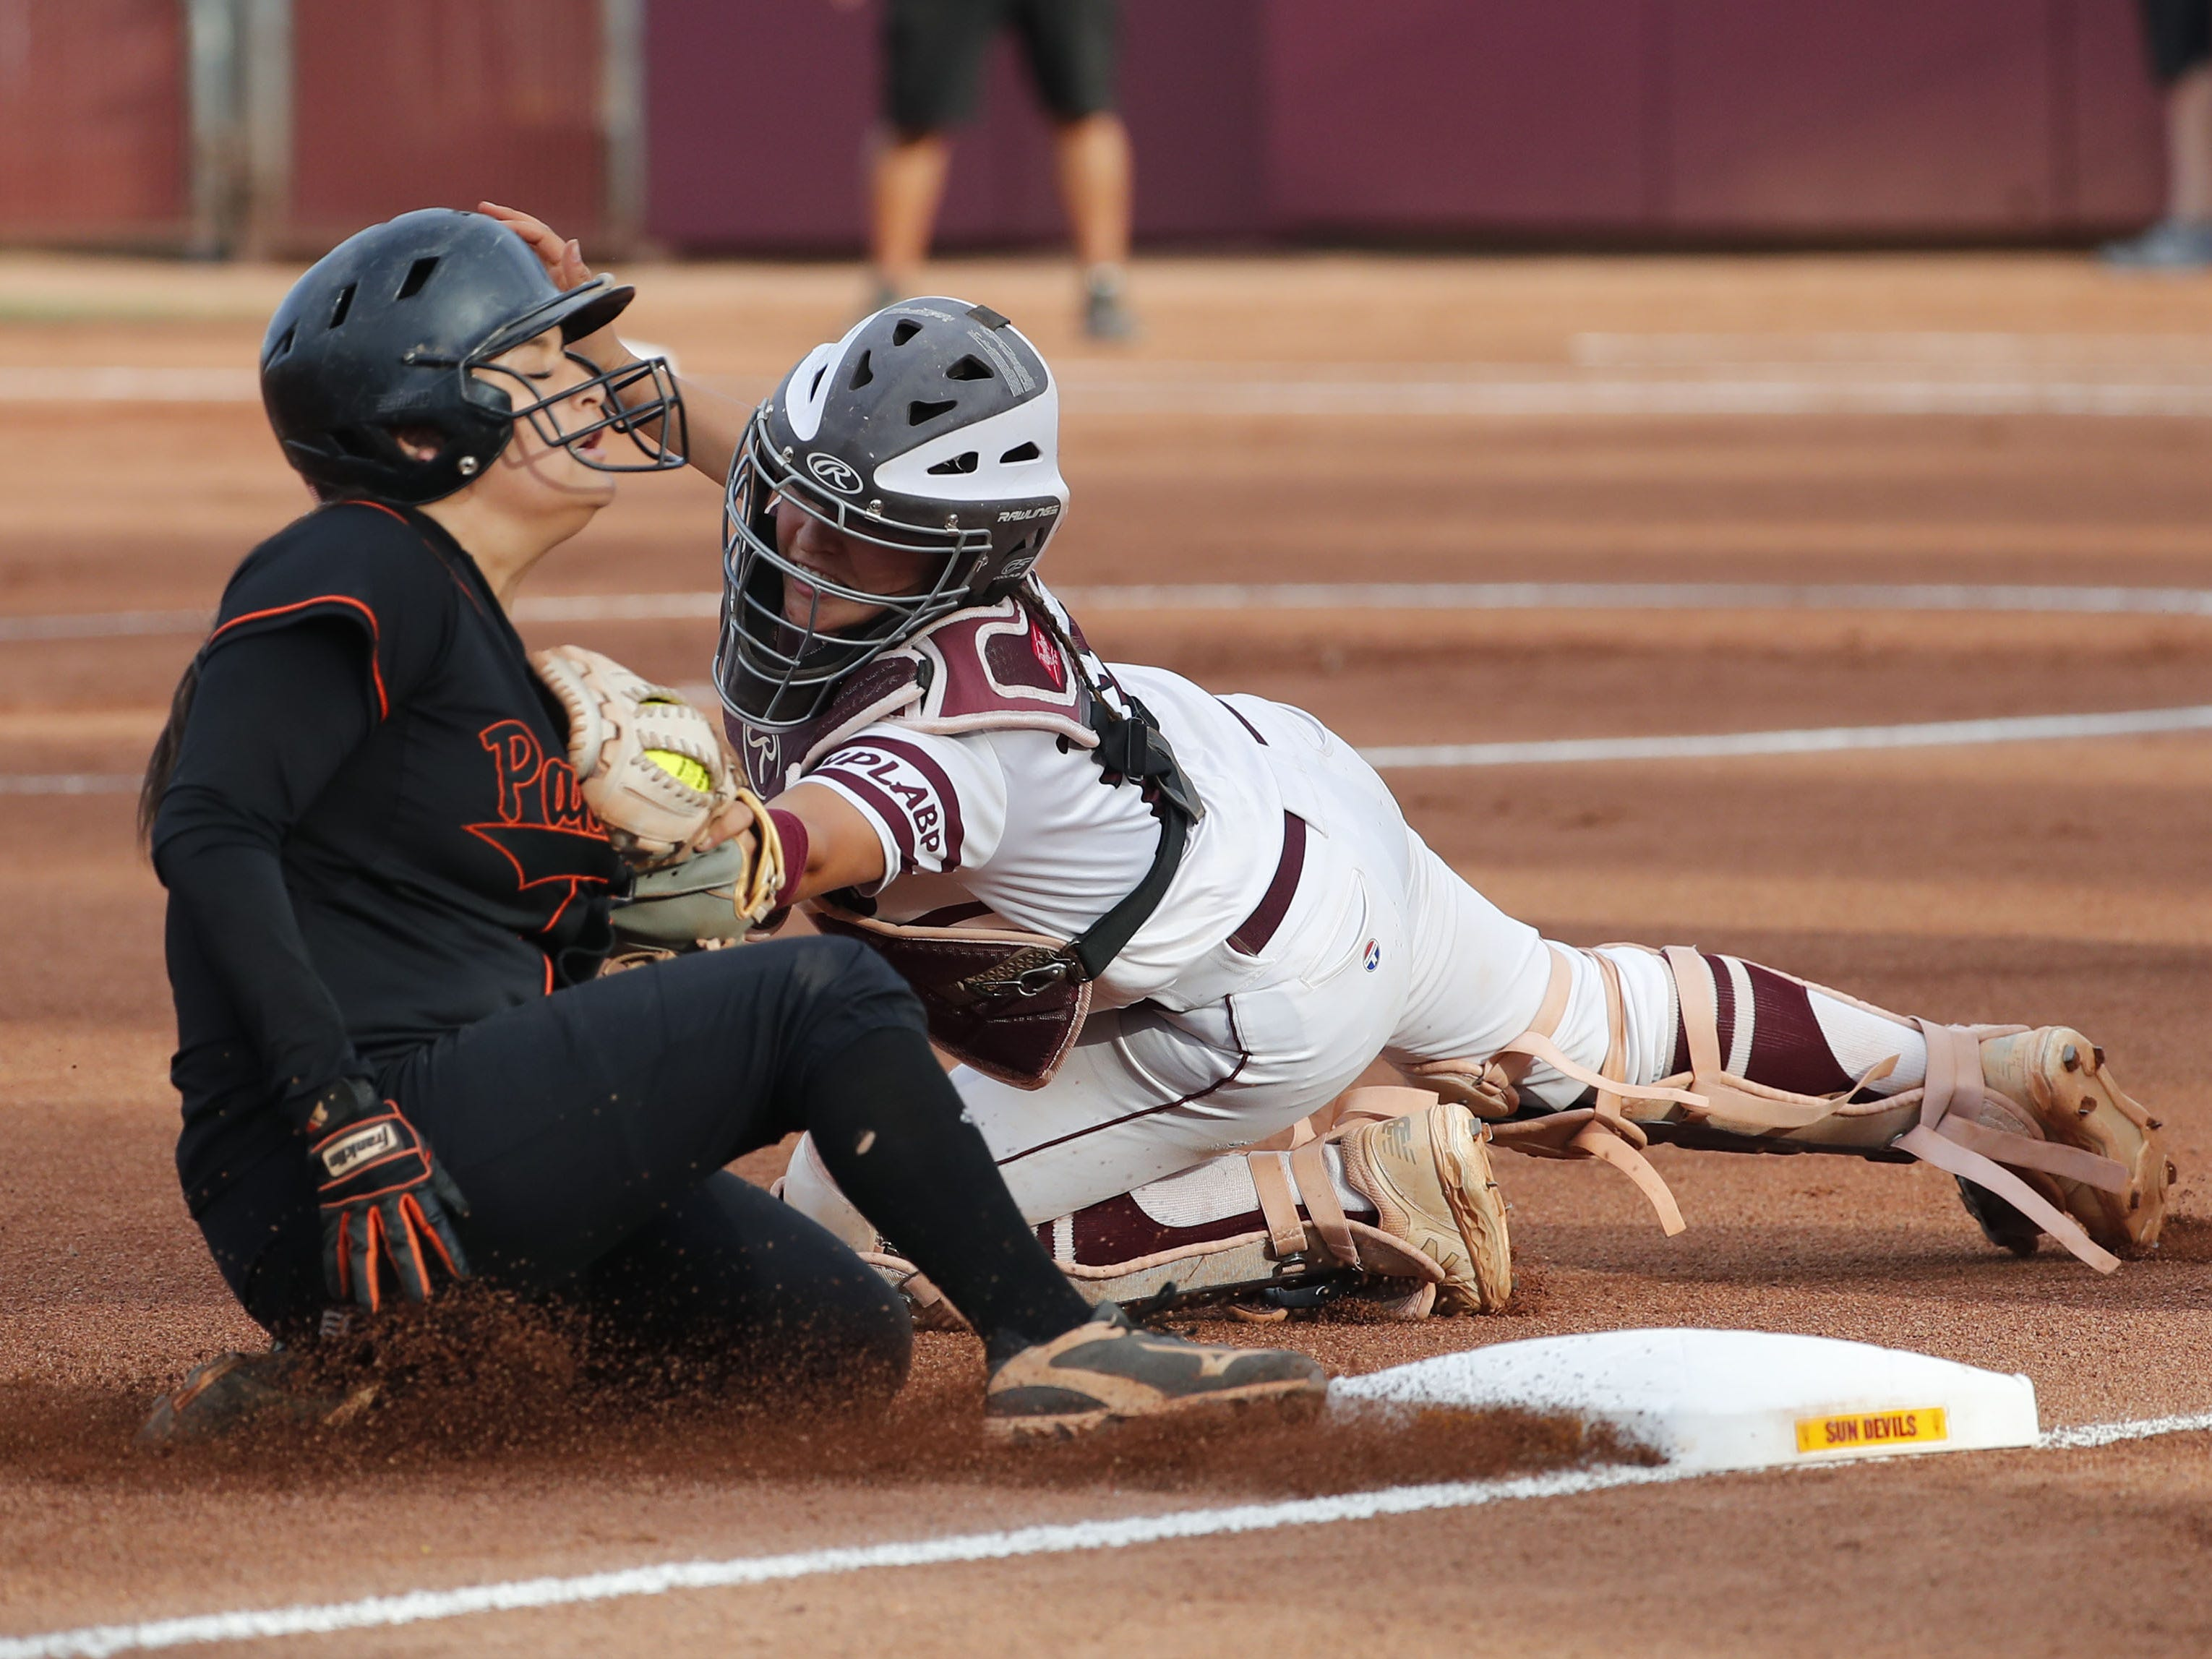 Superior shortstop Anisah Cardenas (3) slides in safely at third base ahead of the tag by Ray catcher Tara Loroña (13) during the 1A softball state championship game in Tempe May 6, 2019.